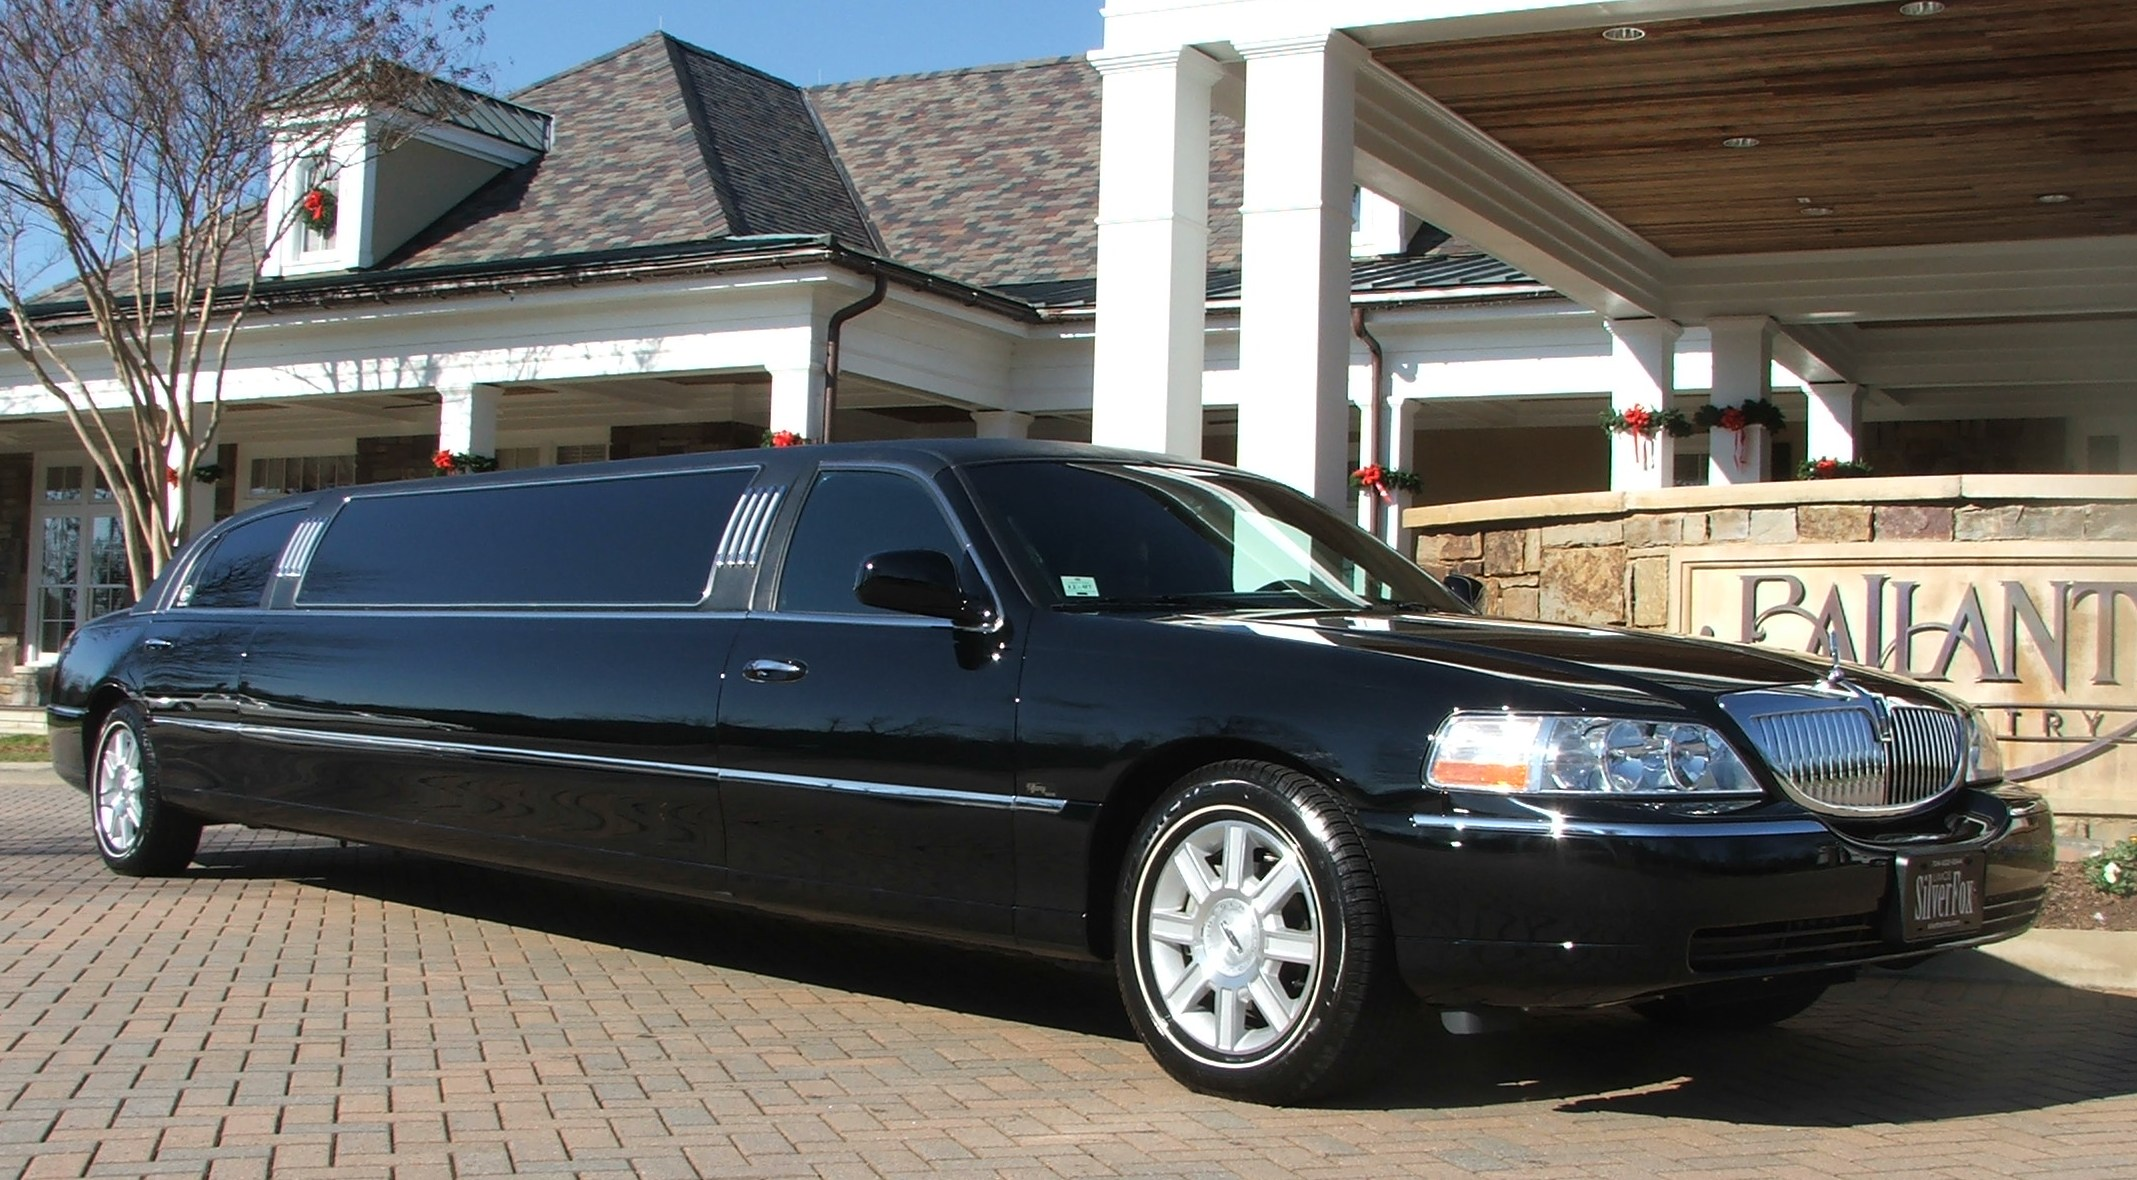 Moonlight Limo Luxurious Limos Serving Bergen County & Wider Area